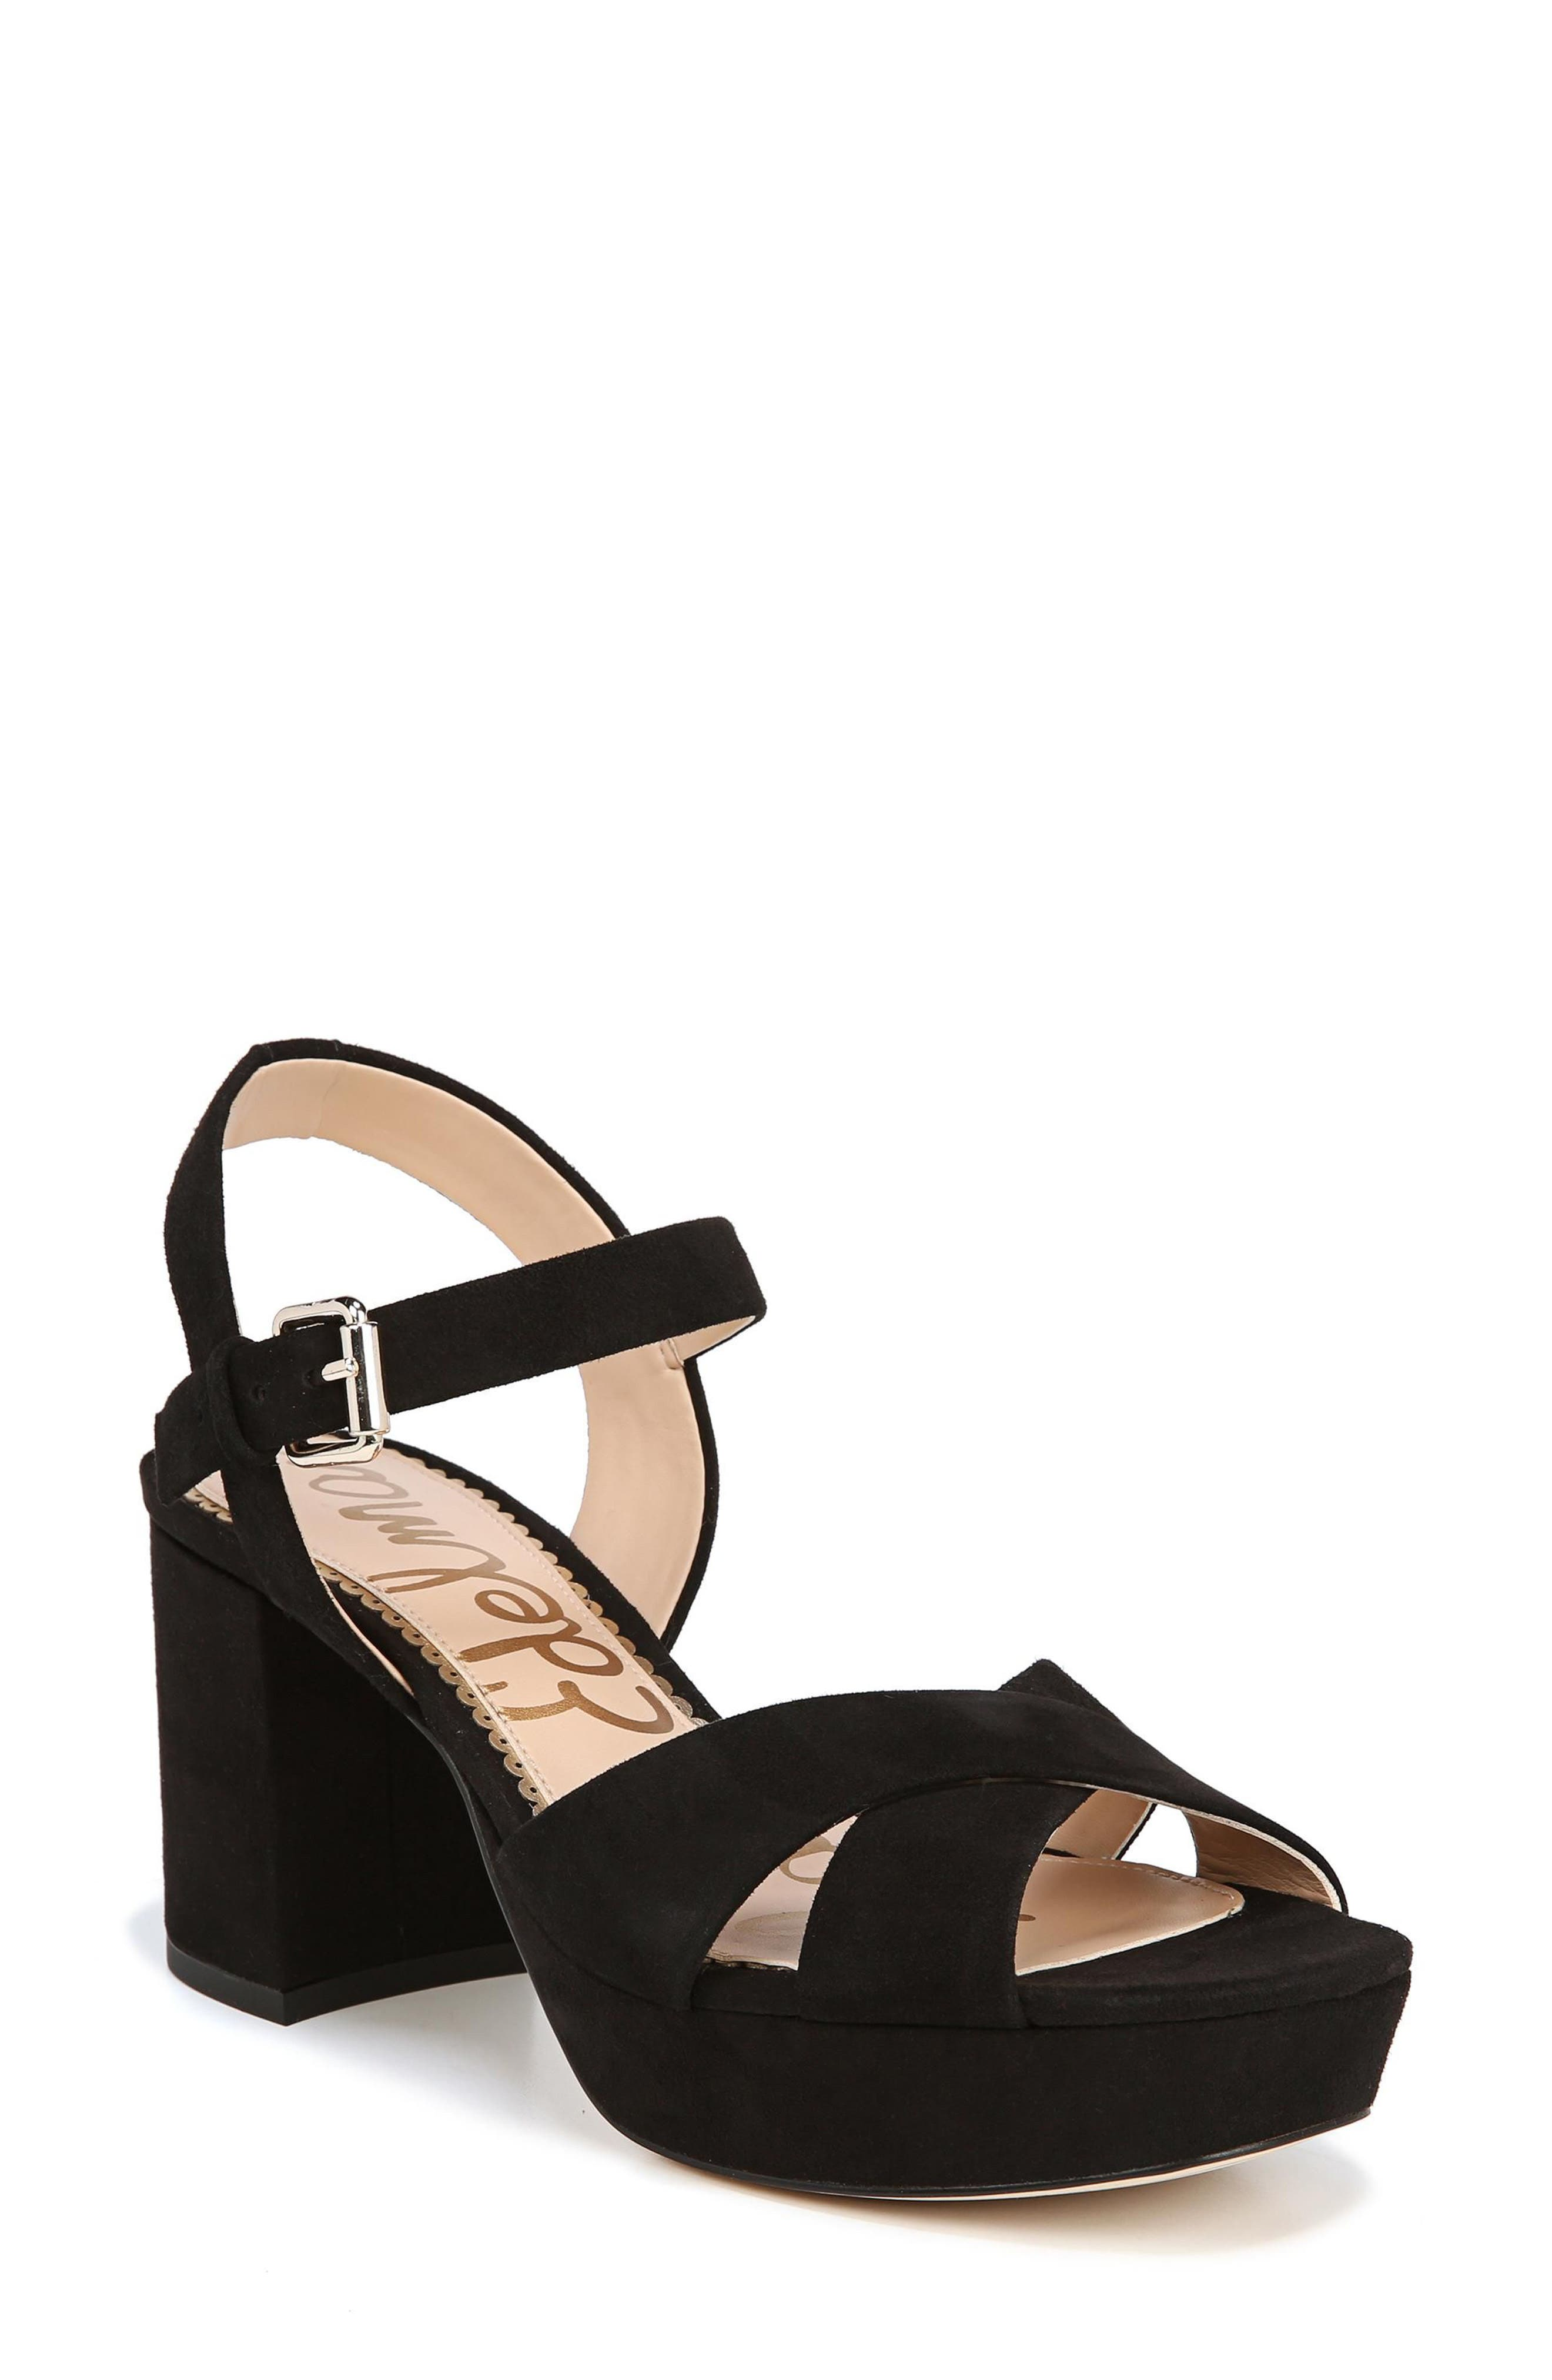 Jolene Platform Sandal,                             Main thumbnail 1, color,                             BLACK SUEDE